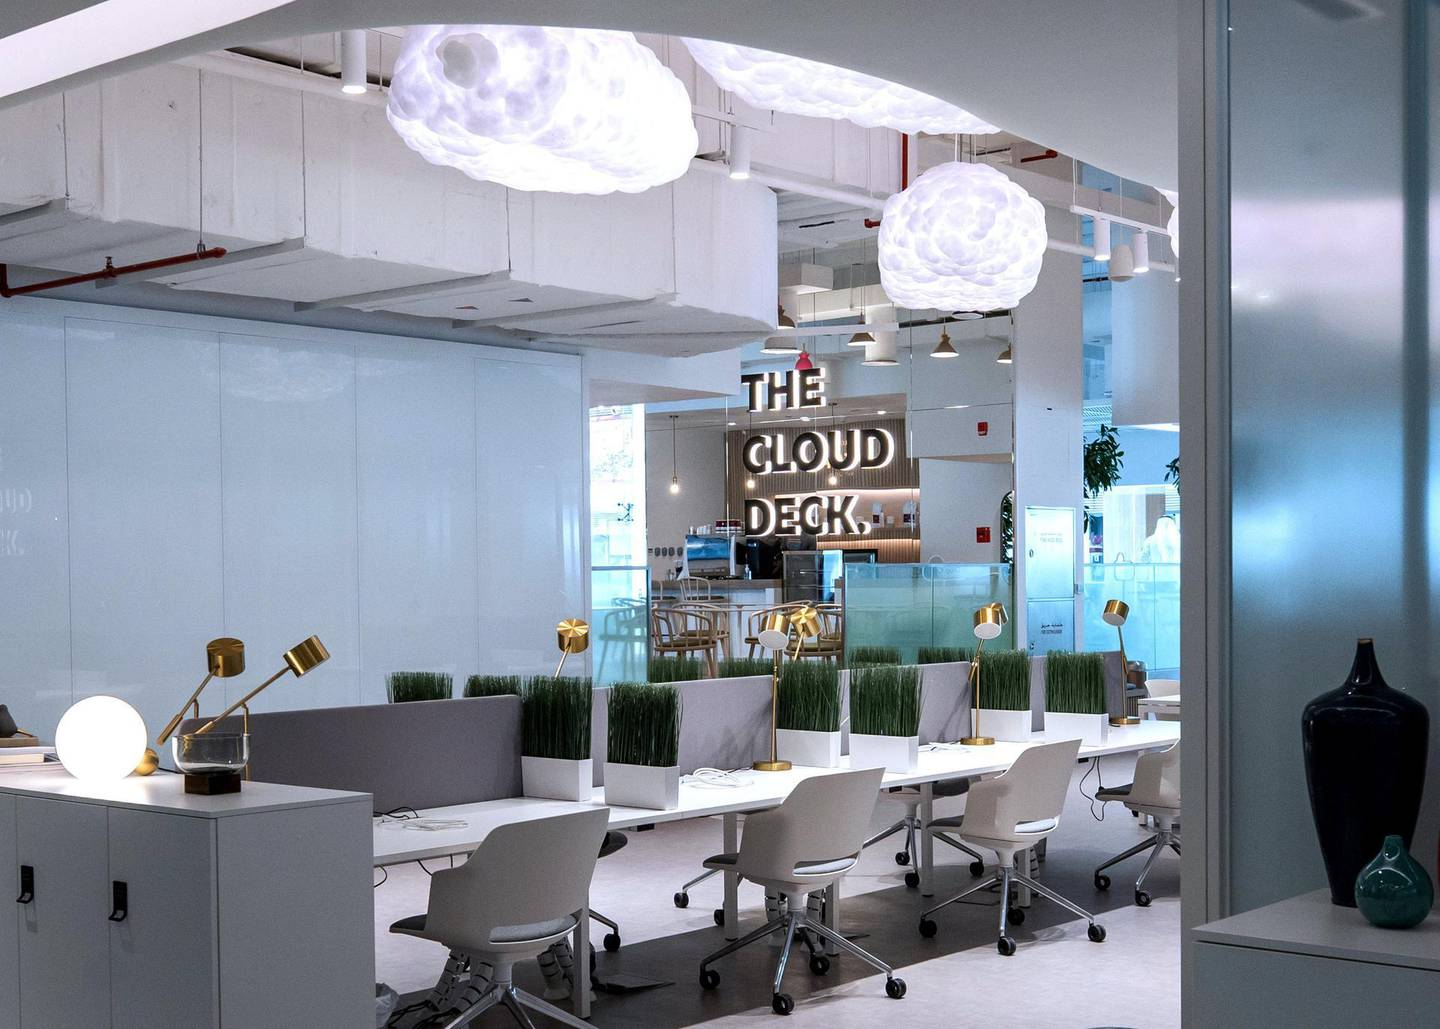 Abu Dhabi, United Arab Emirates, October  12, 2020.  Cloud Spaces has opened at Yas Mall.  Cloud Spaces - flexible workspace solutions with inspiring co-working zones, meeting rooms and contemporary serviced offices.Victor Besa/The NationalSection: LFReporter:  Evelyn Lau